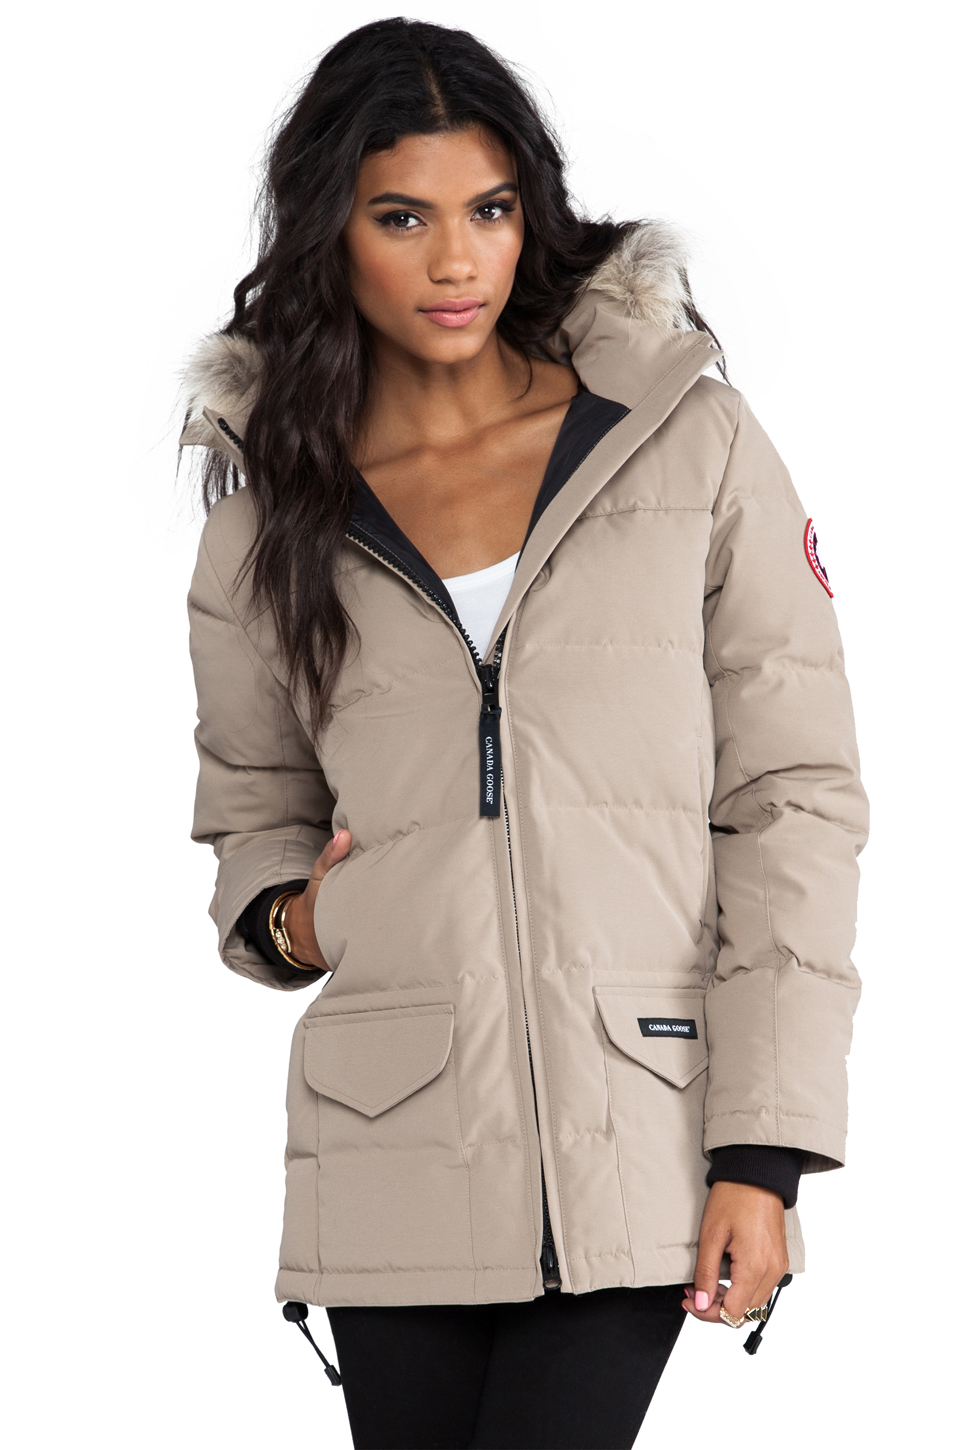 Lyst - Canada Goose Solaris Parka With Coyote Fur in Brown fbc6f11ee